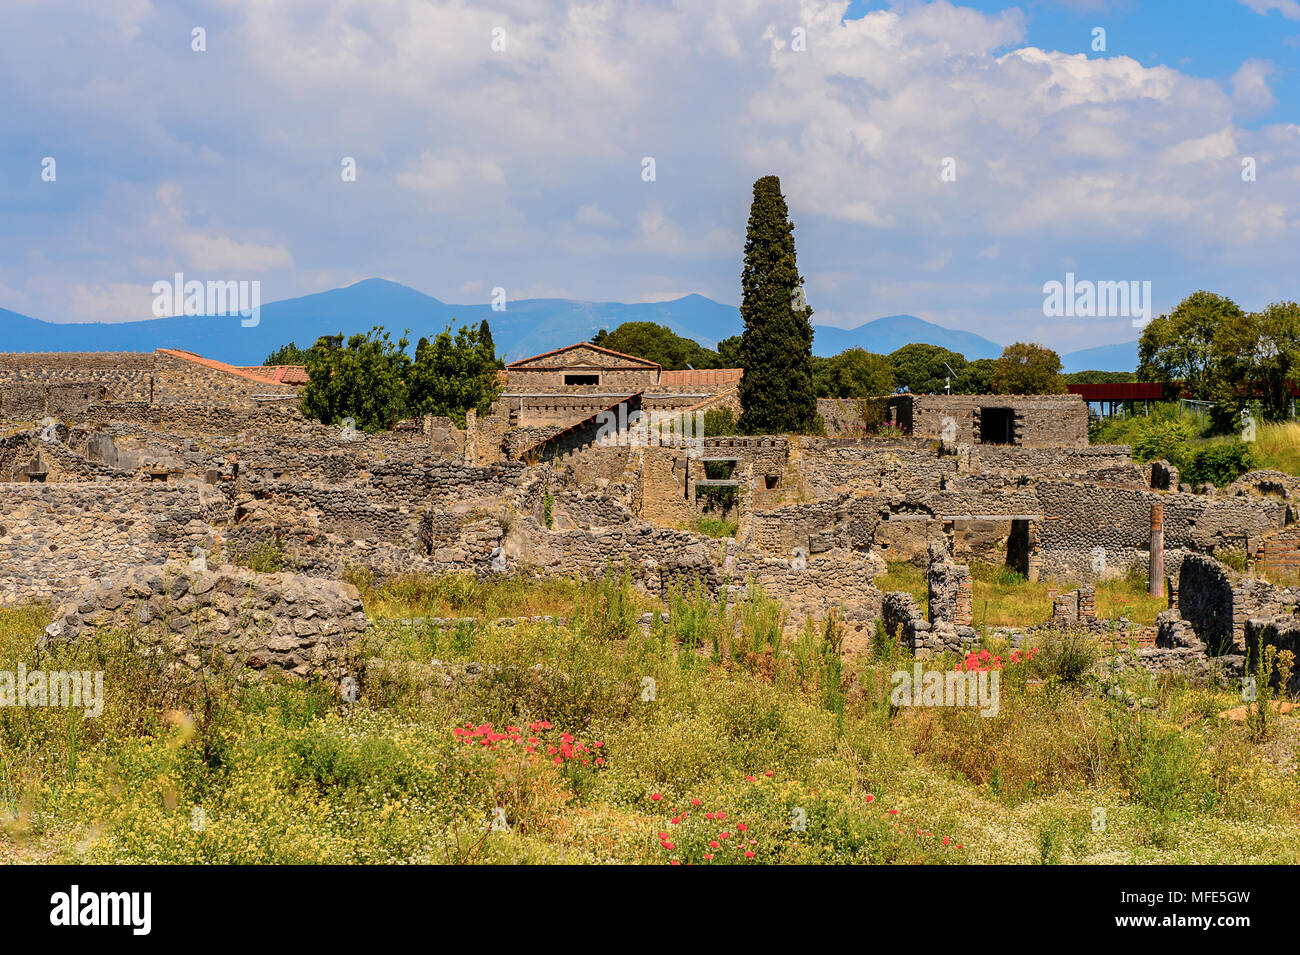 Destroyed architecture of Pompeii, an ancient Roman town destroyed by the volcano Vesuvius. UNESCO World Heritage site - Stock Image